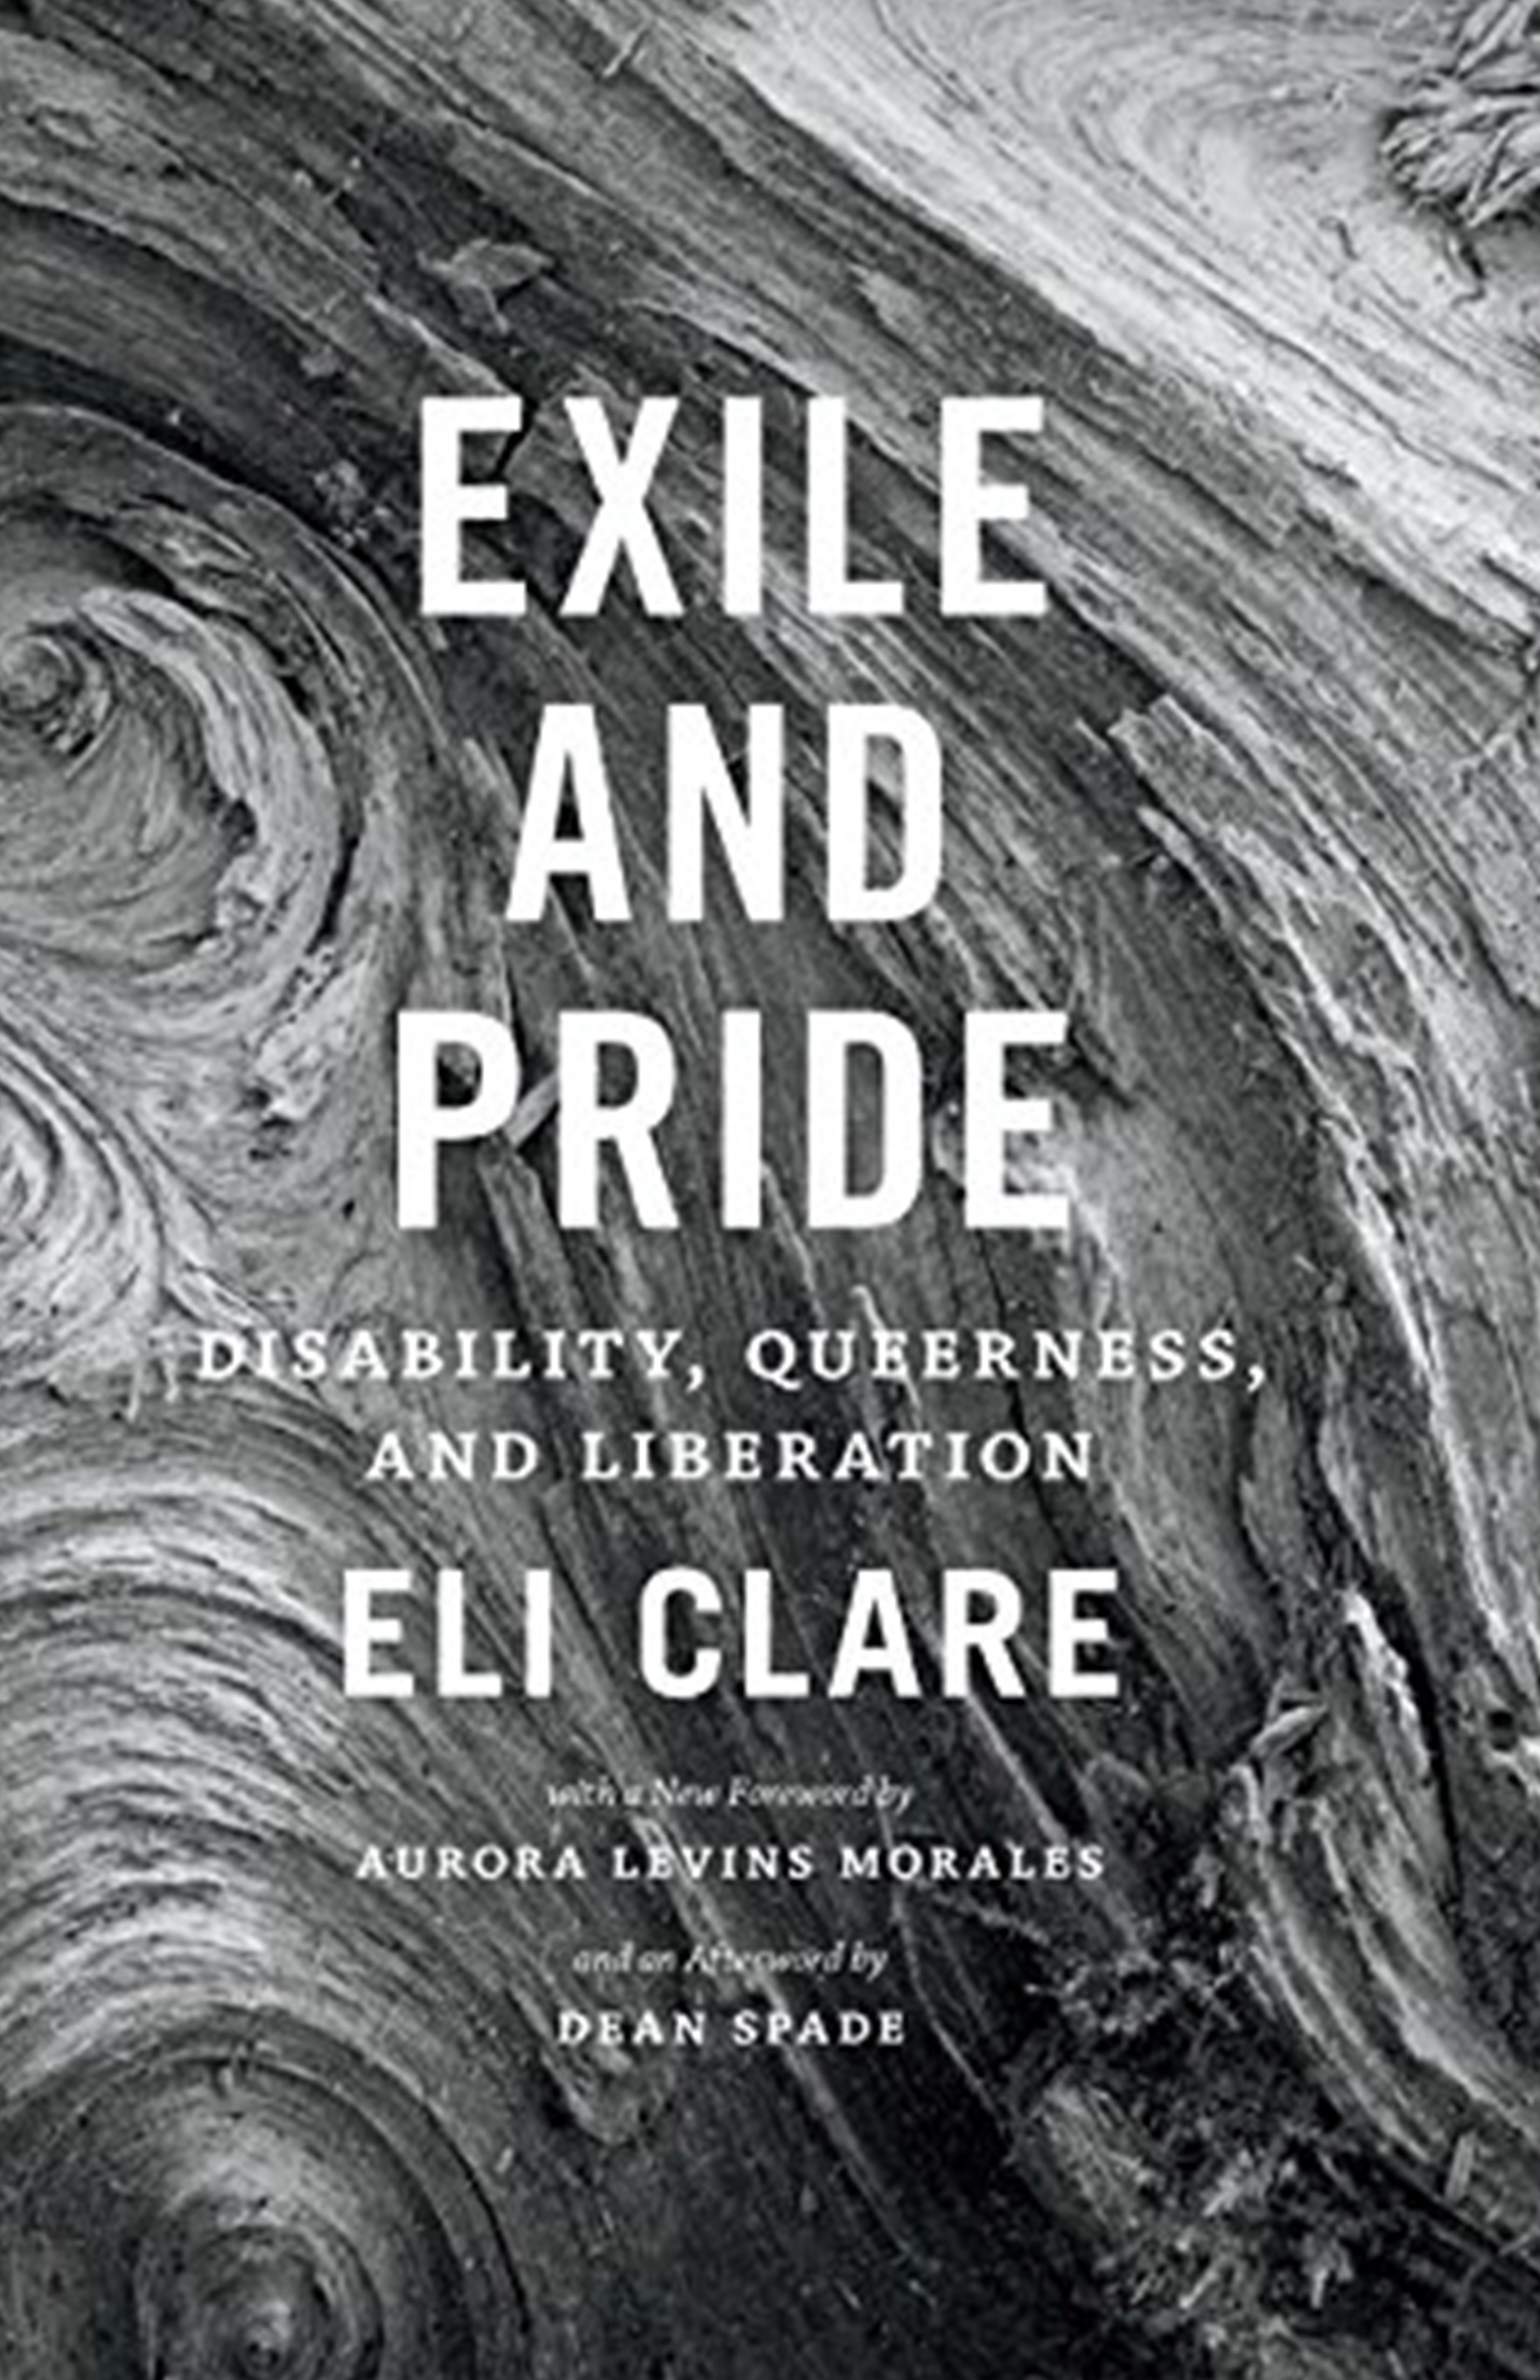 Exile and Pride: Disability, queerness and liberation by Eli Clare